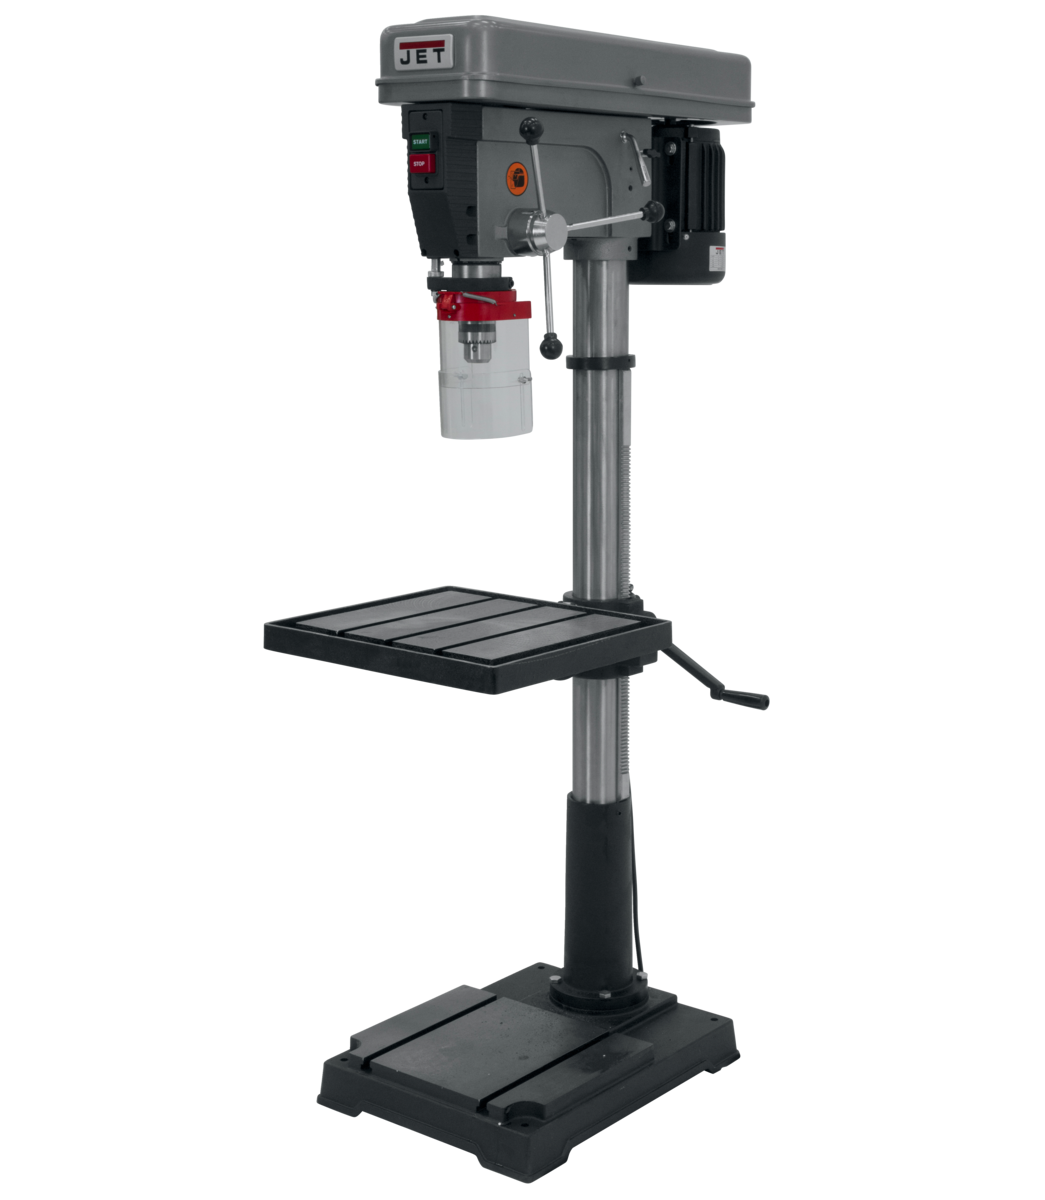 "J-2550, 20"" Floor Model Drill Press 115V 1Ph"